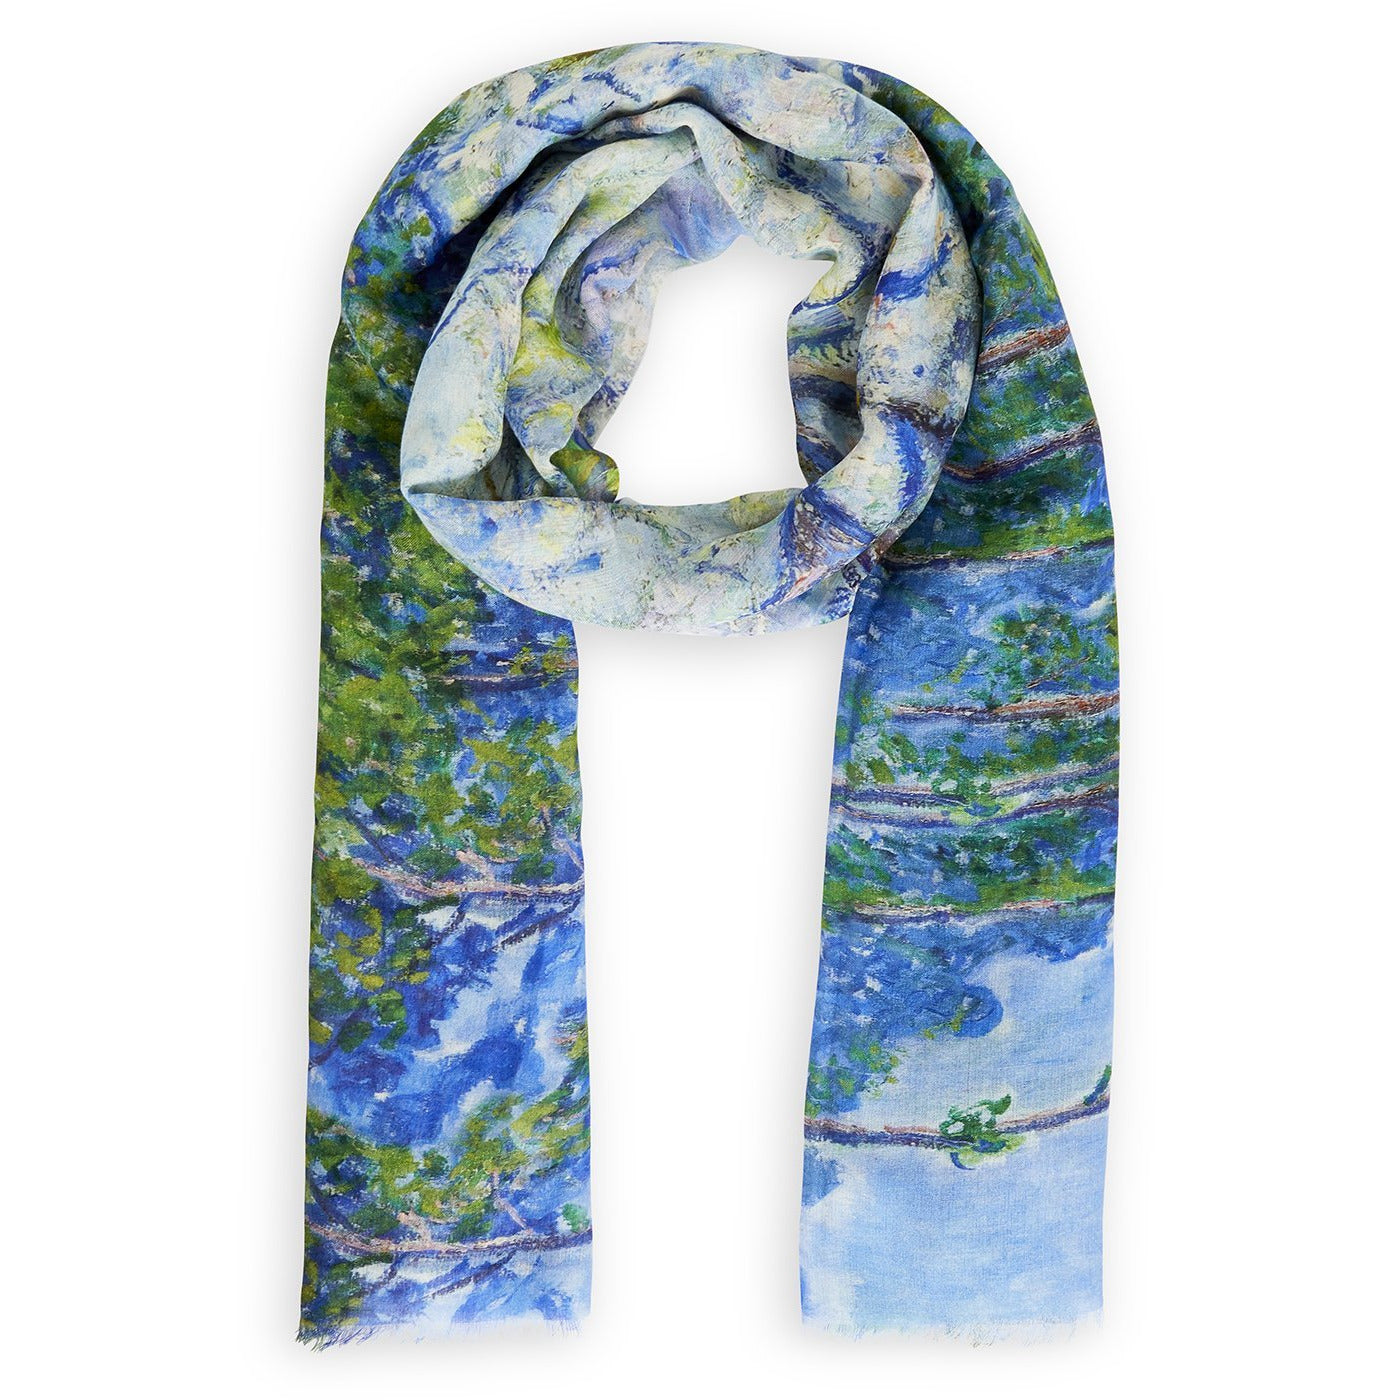 Featured image for the project: Monet's Trees - Silk scarf